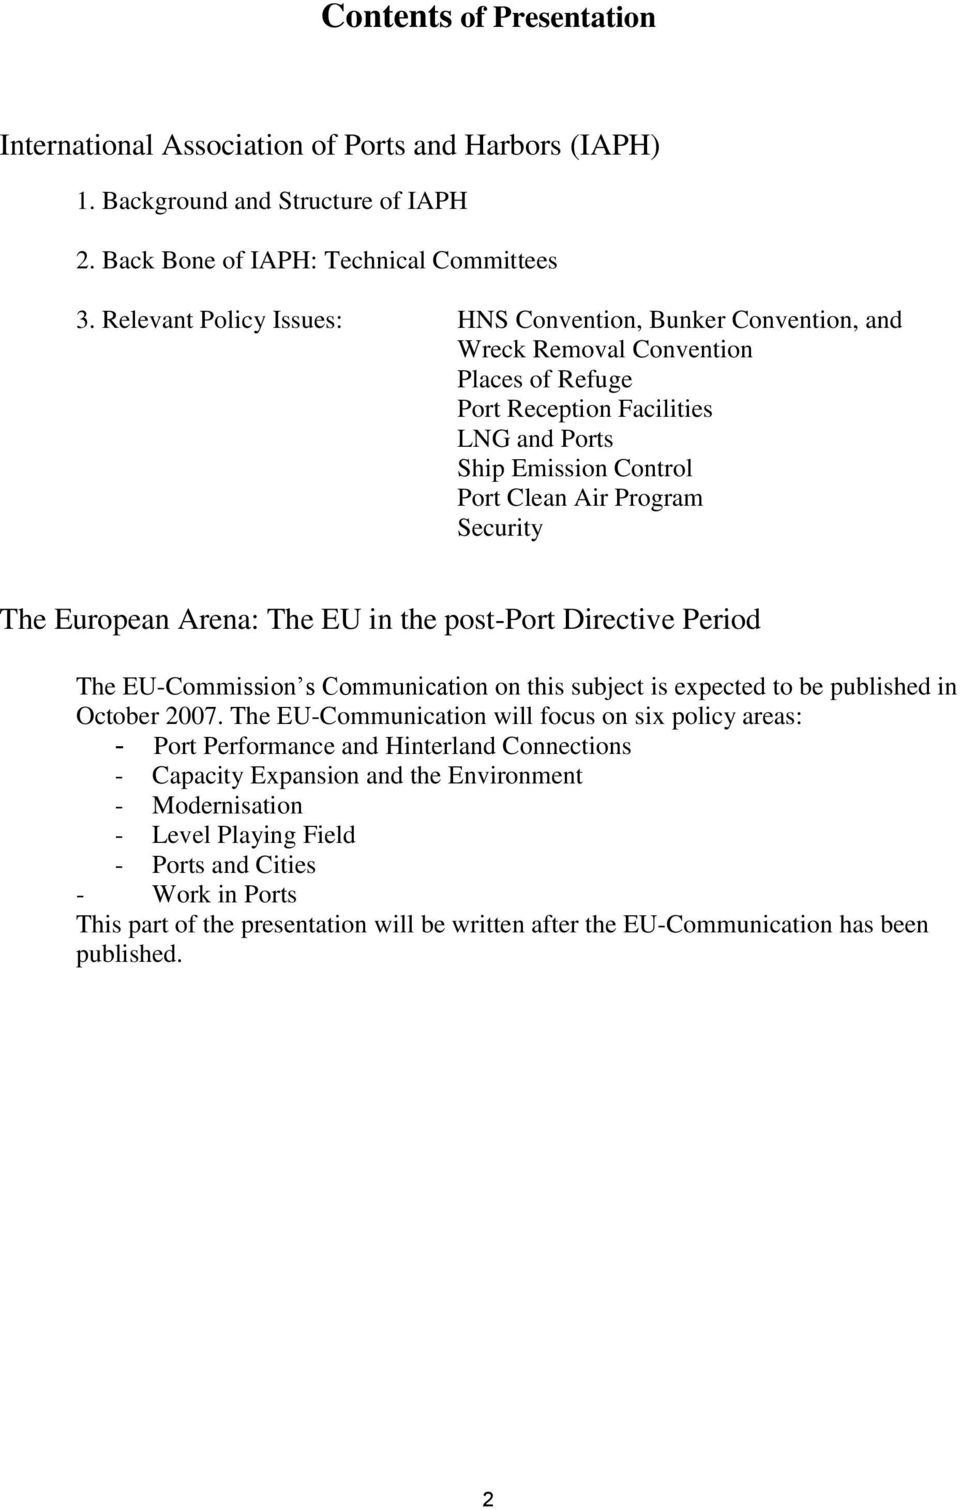 The European Arena: The EU in the post-port Directive Period The EU-Commission s Communication on this subject is expected to be published in October 2007.